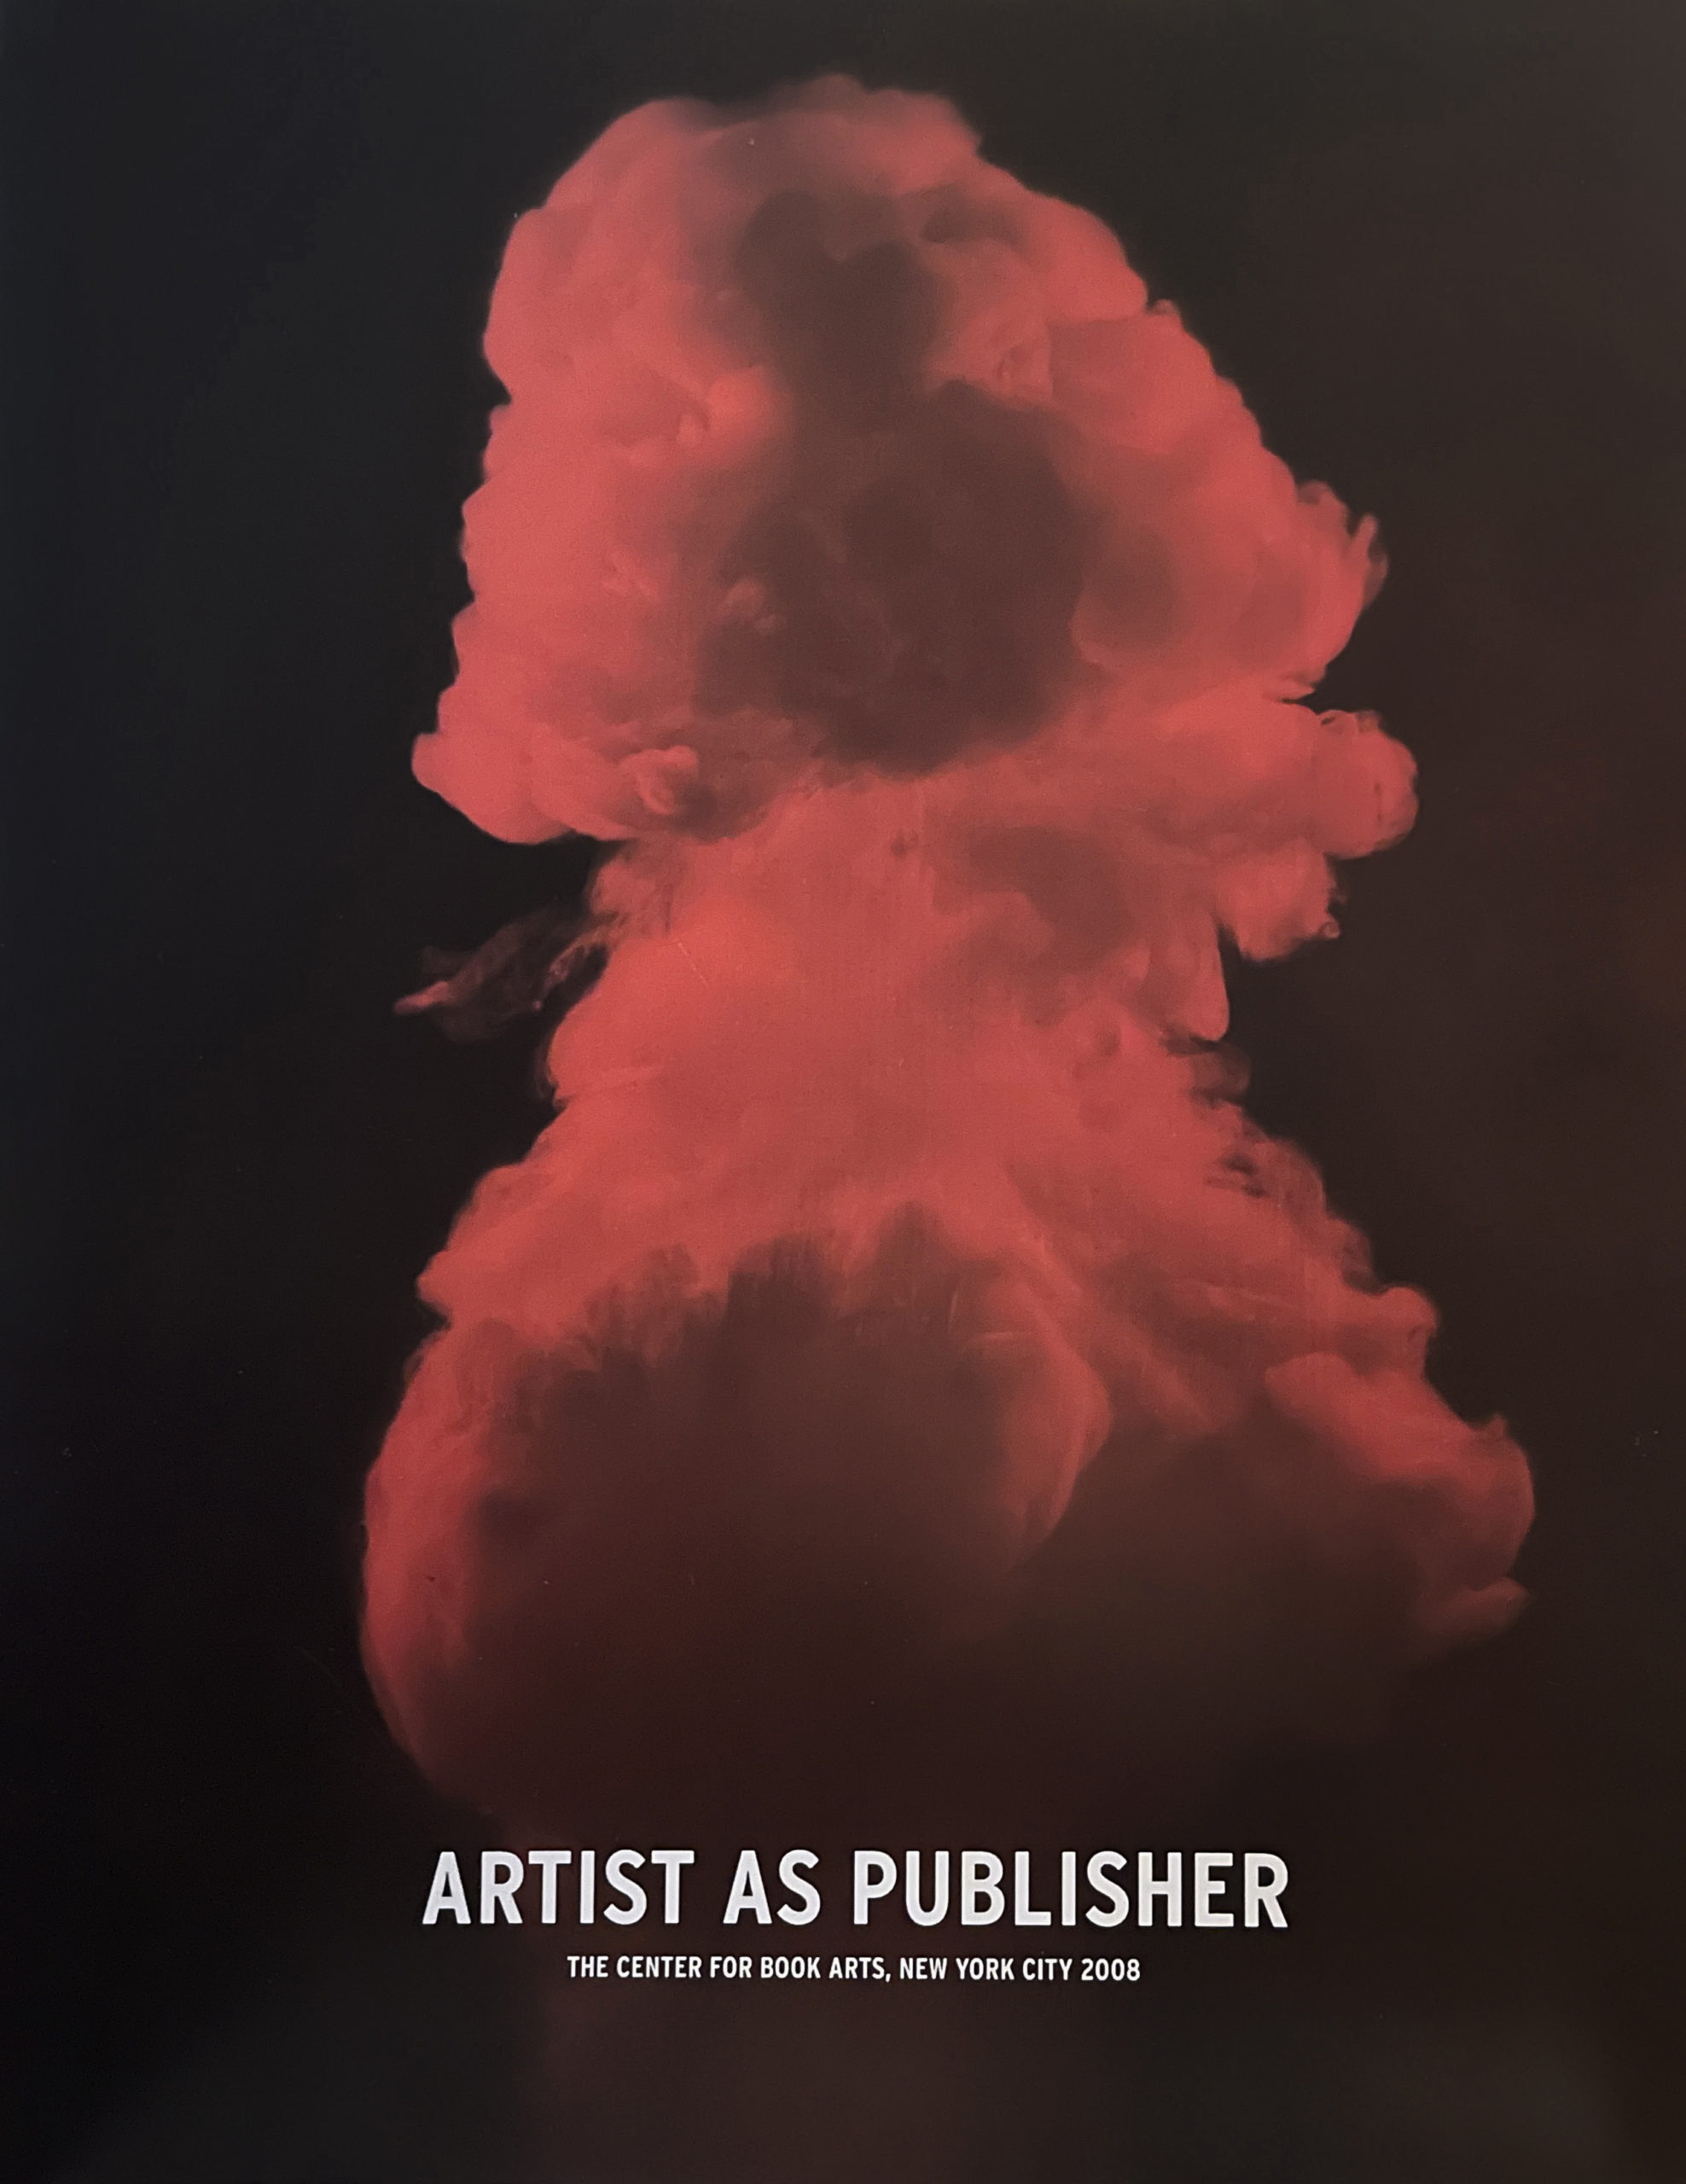 black book cover with red mushroom cloud